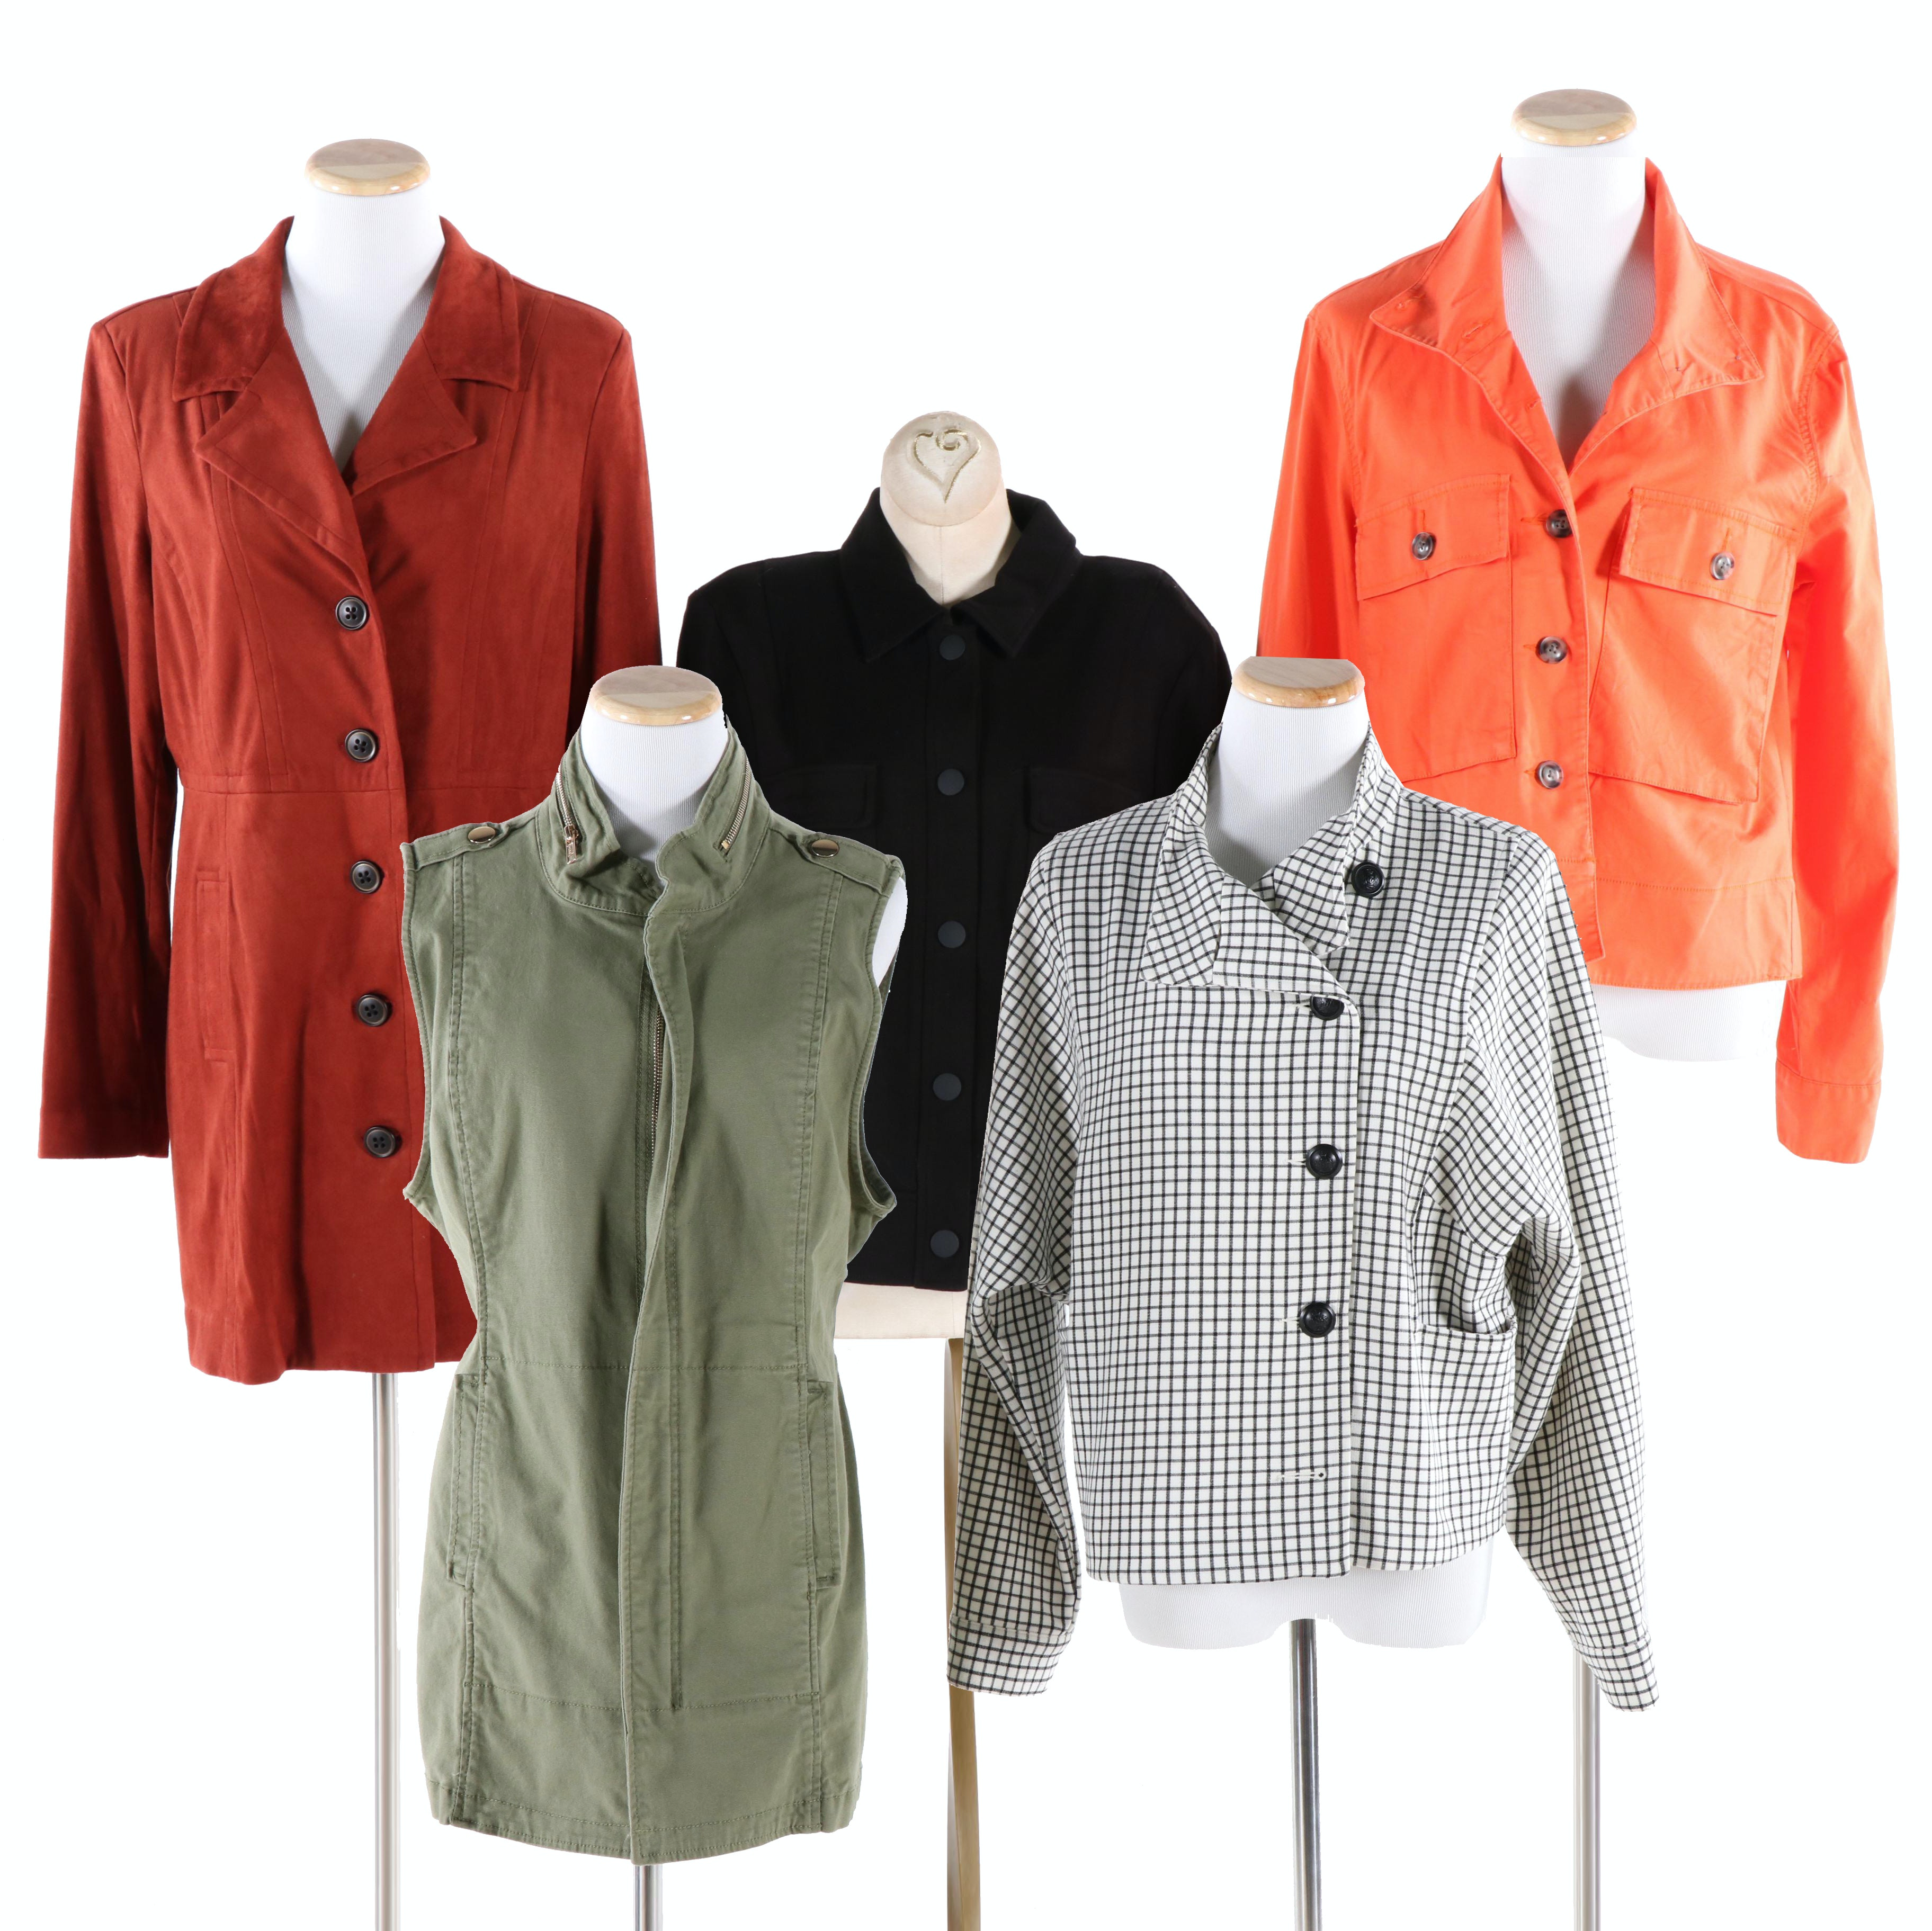 Cabi Jackets, Coat and Vest Grouping